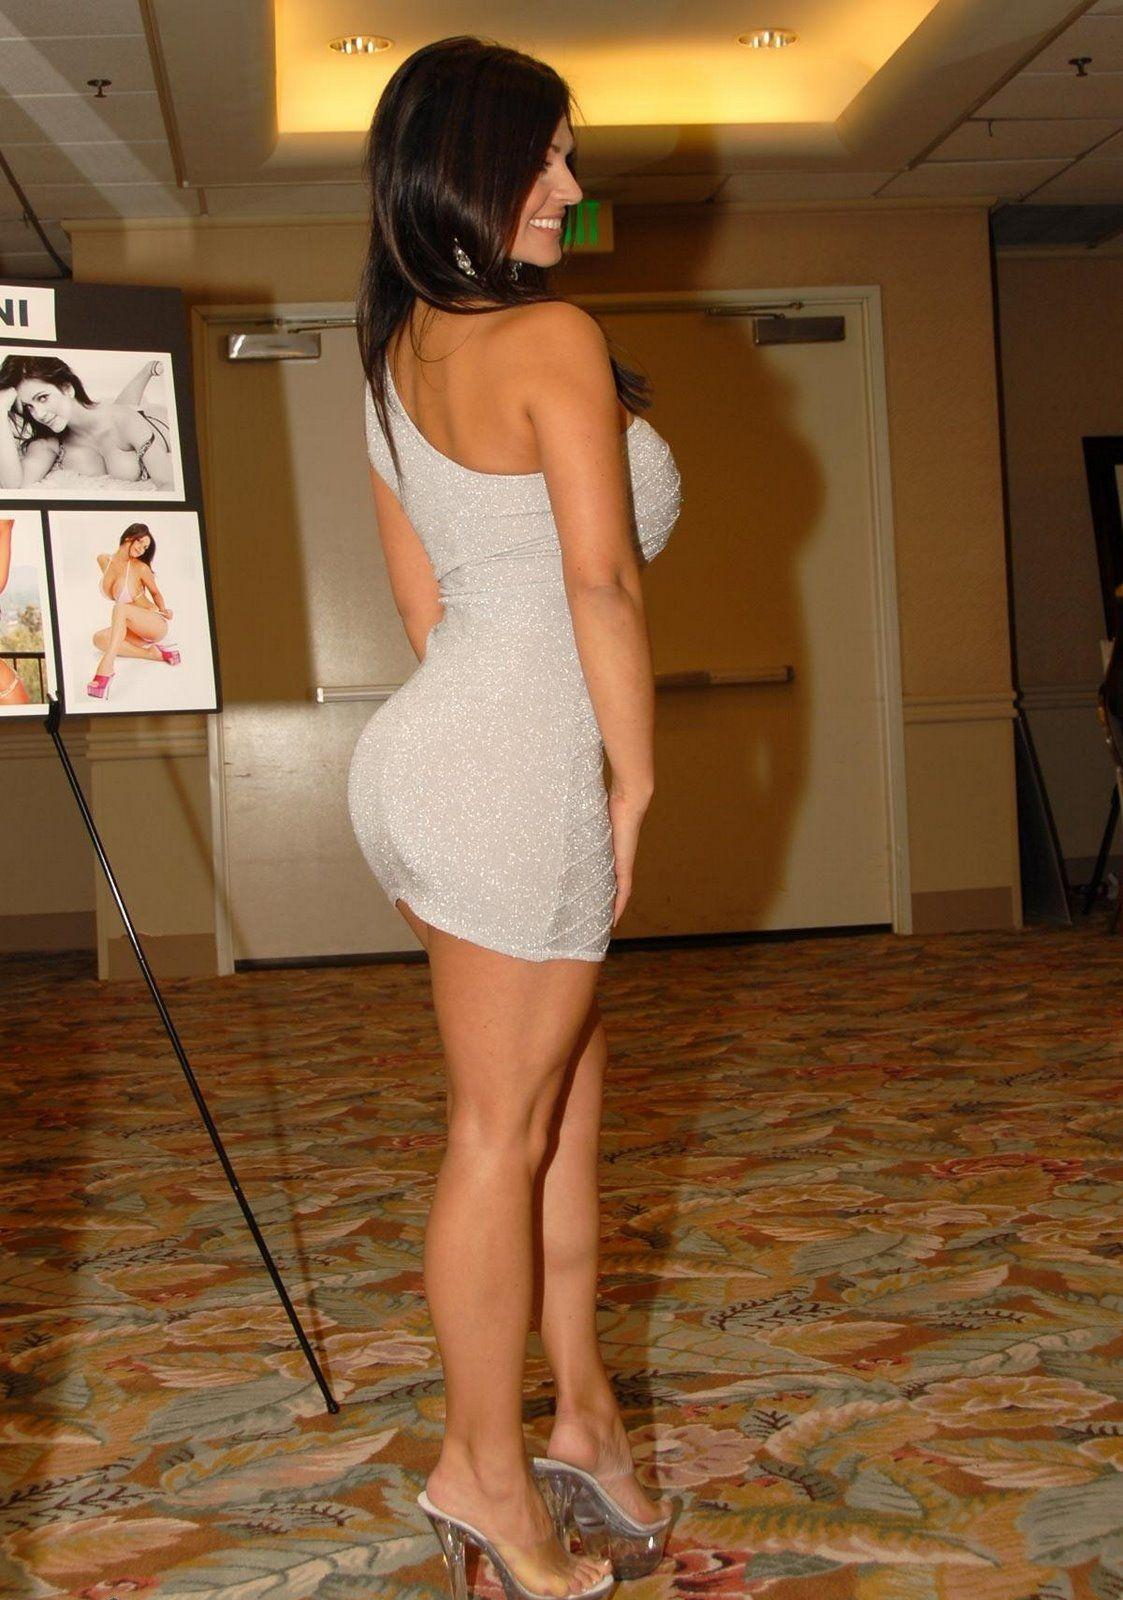 denise milani sexy miley cyrus naked topless 39 s blog. Black Bedroom Furniture Sets. Home Design Ideas